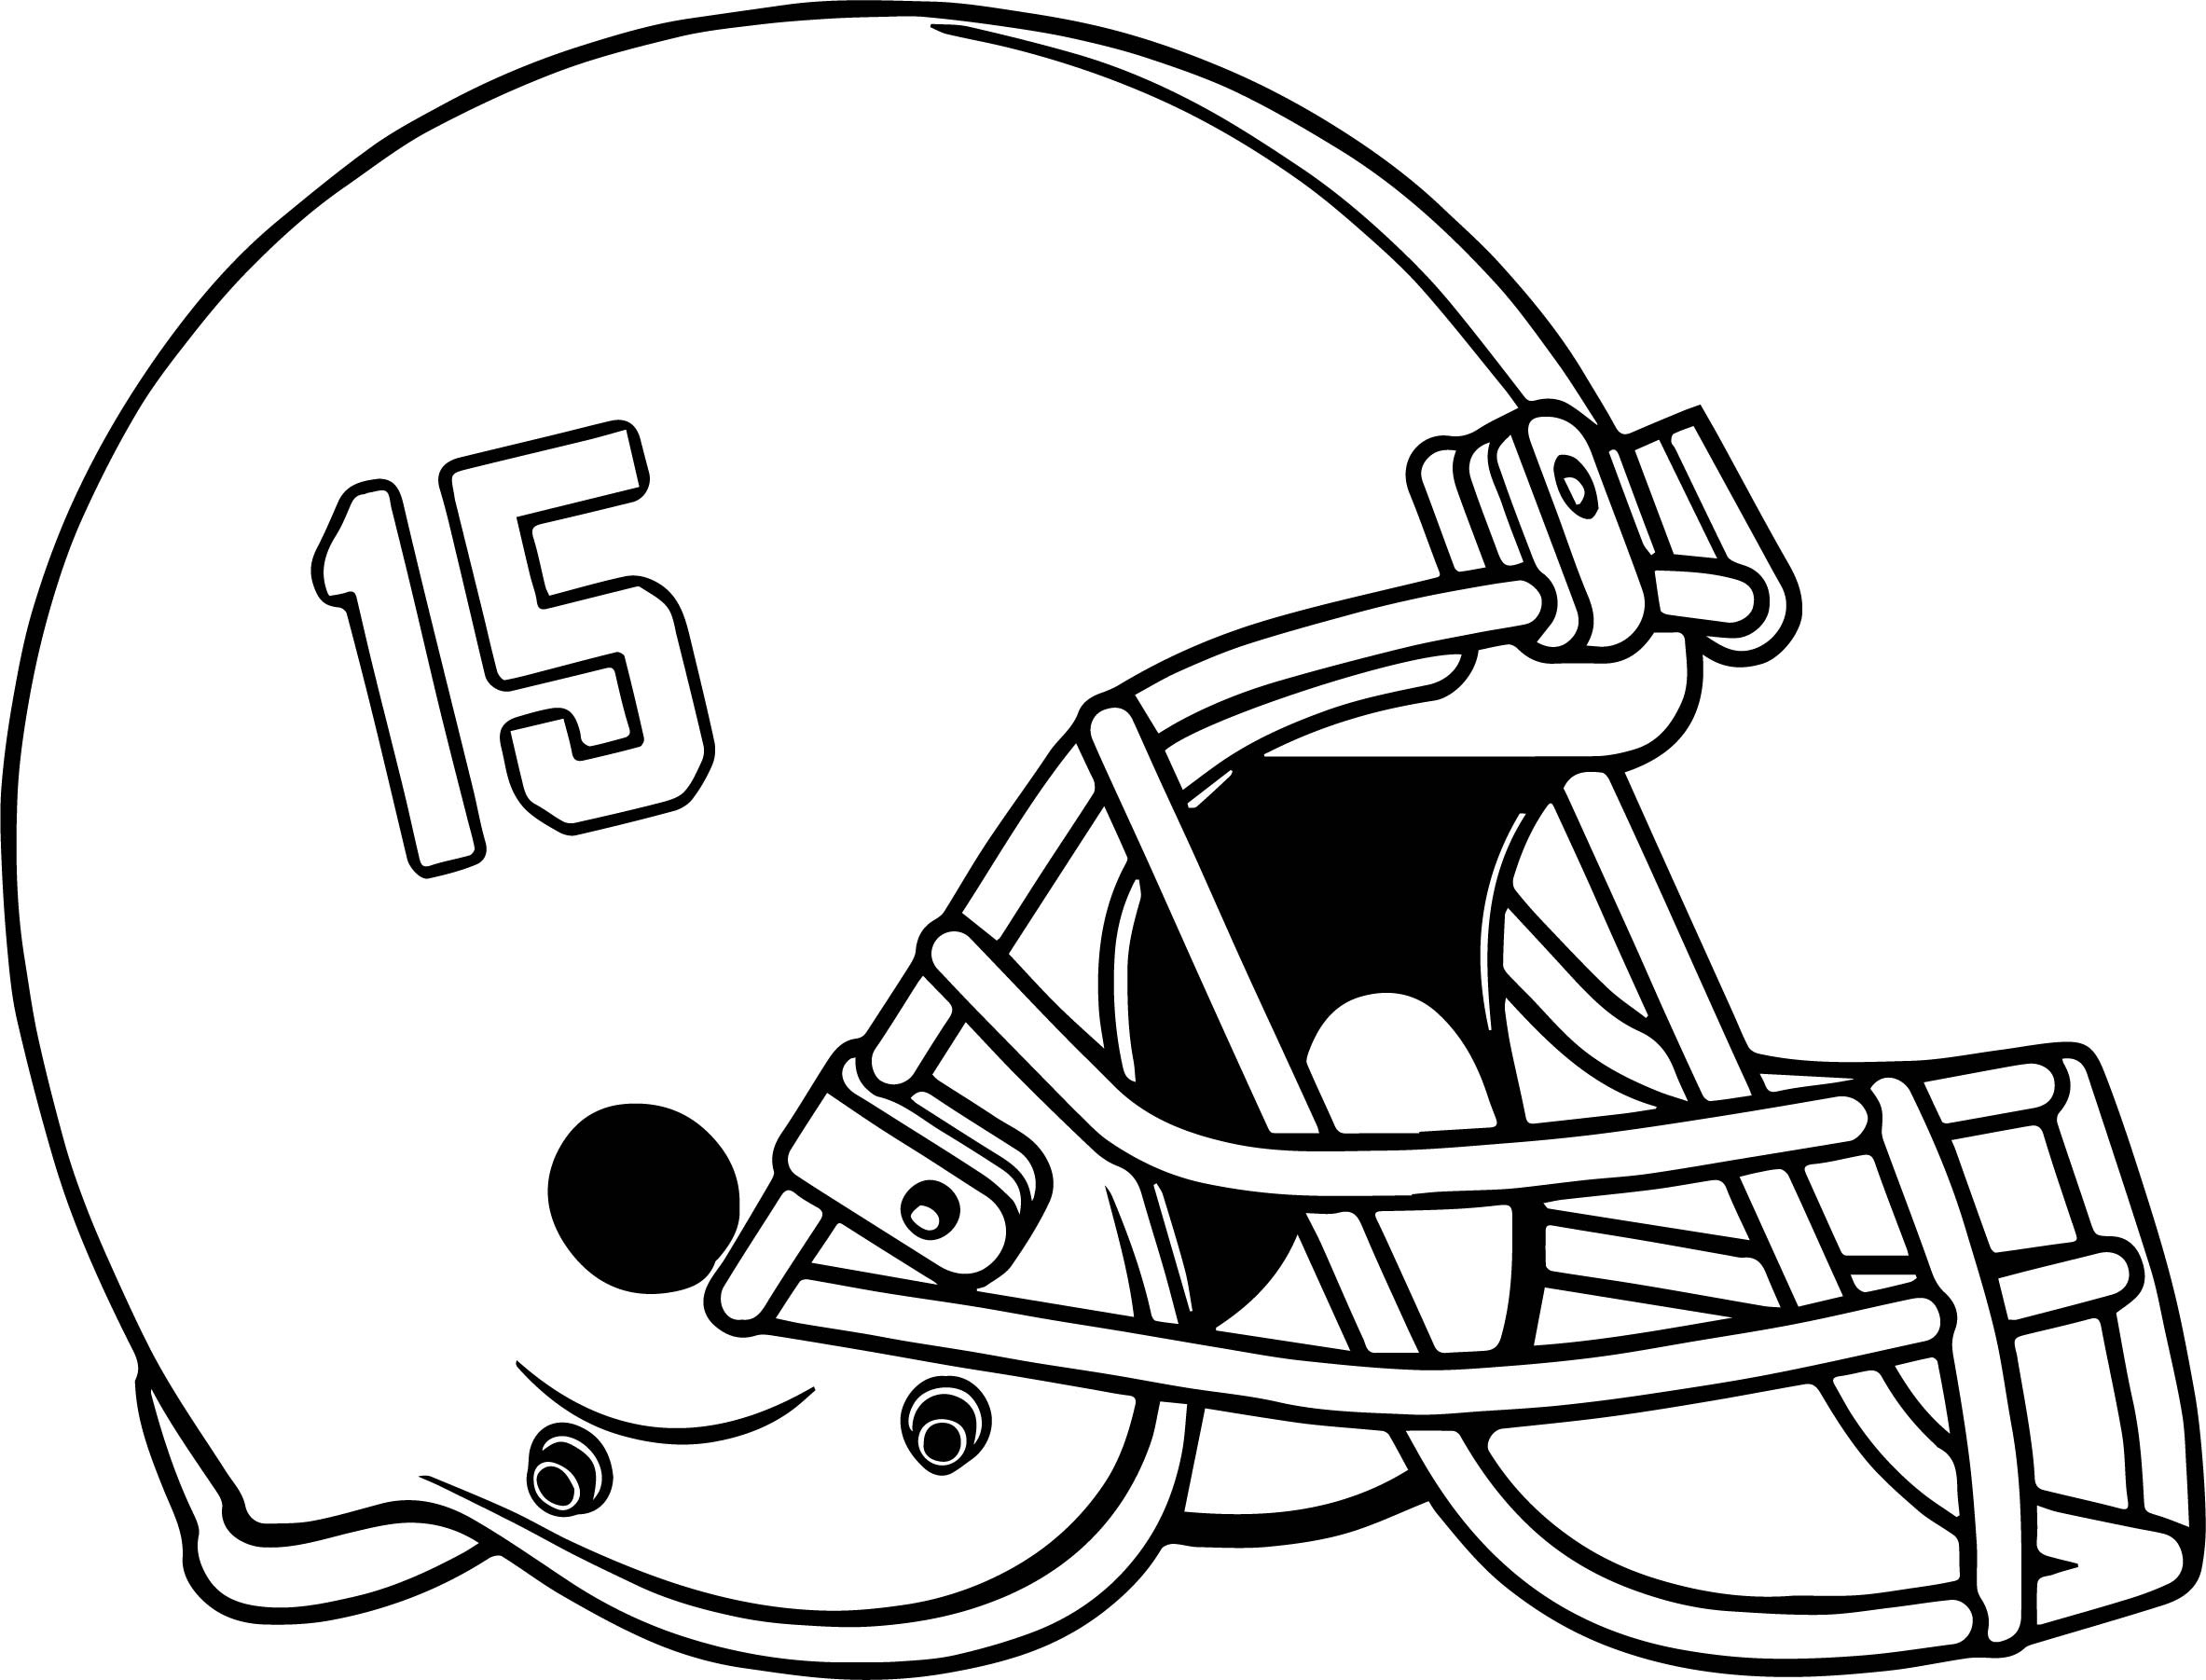 army helmet coloring page free printable iron man helmet coloring picture helmet army page coloring